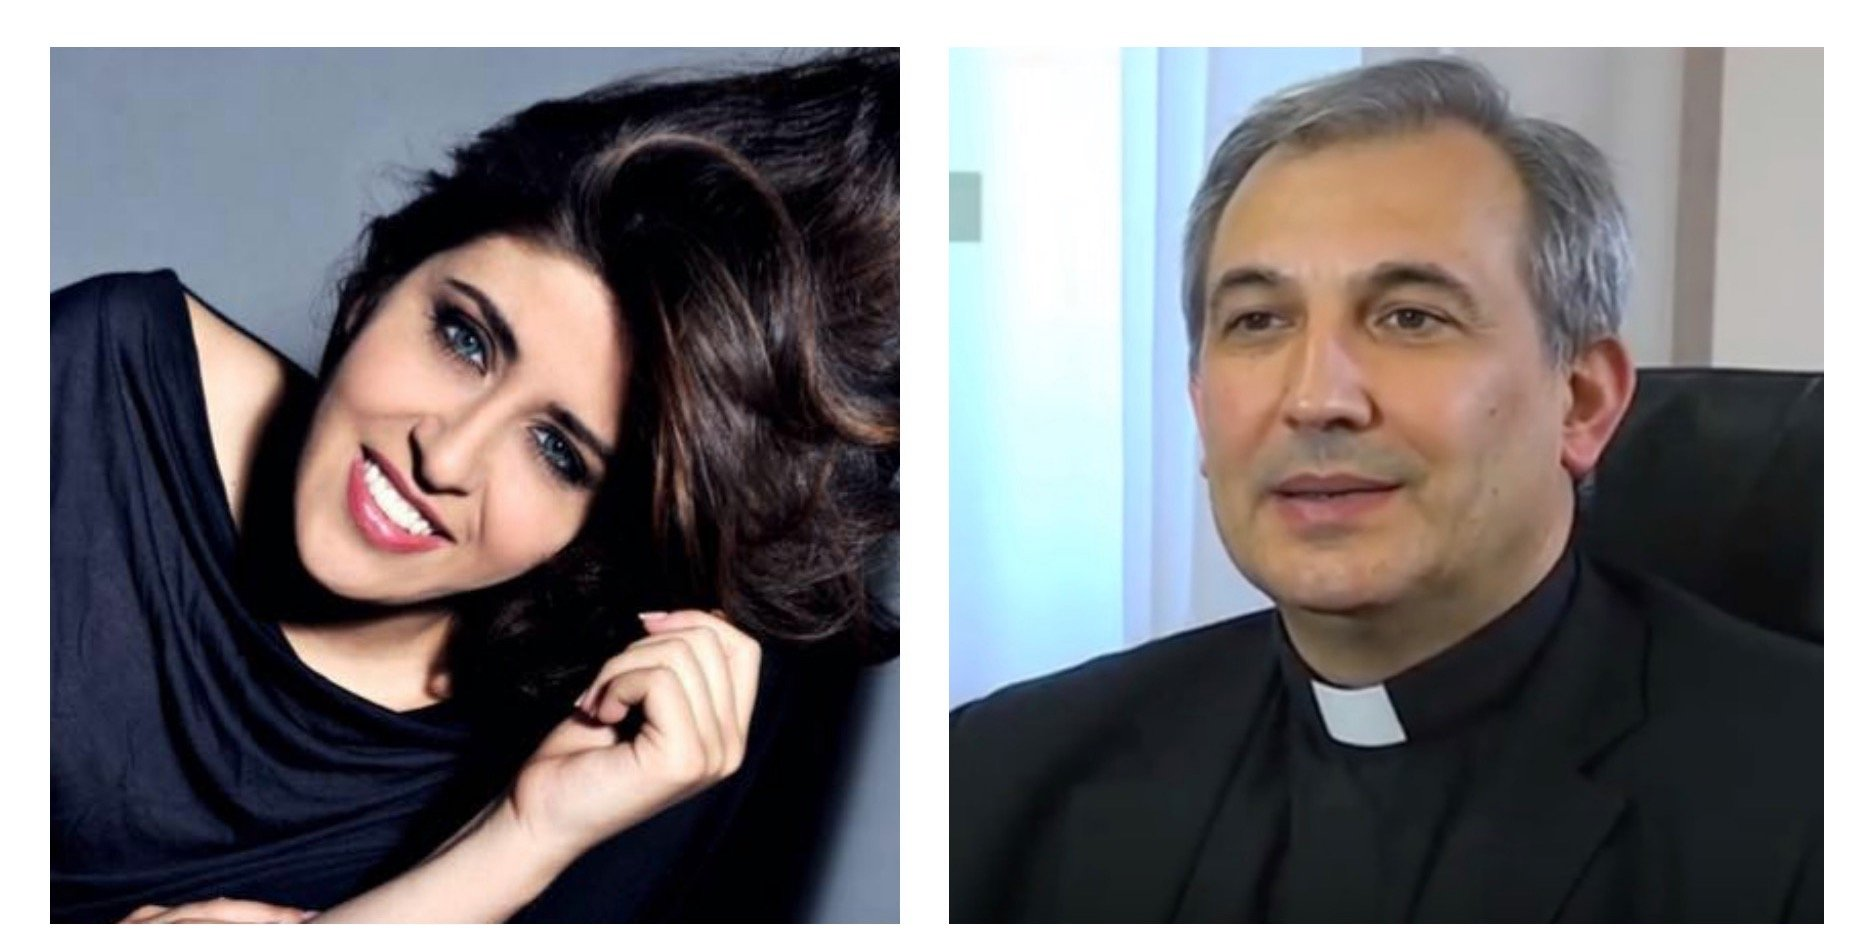 The Vatican on Monday (Nov. 2) announced the arrest of Spanish priest Lucio Angel Vallejo Balda and Italian public relations adviser Francesca Chaouqui in connection with the alleged theft of leaked confidential documents.